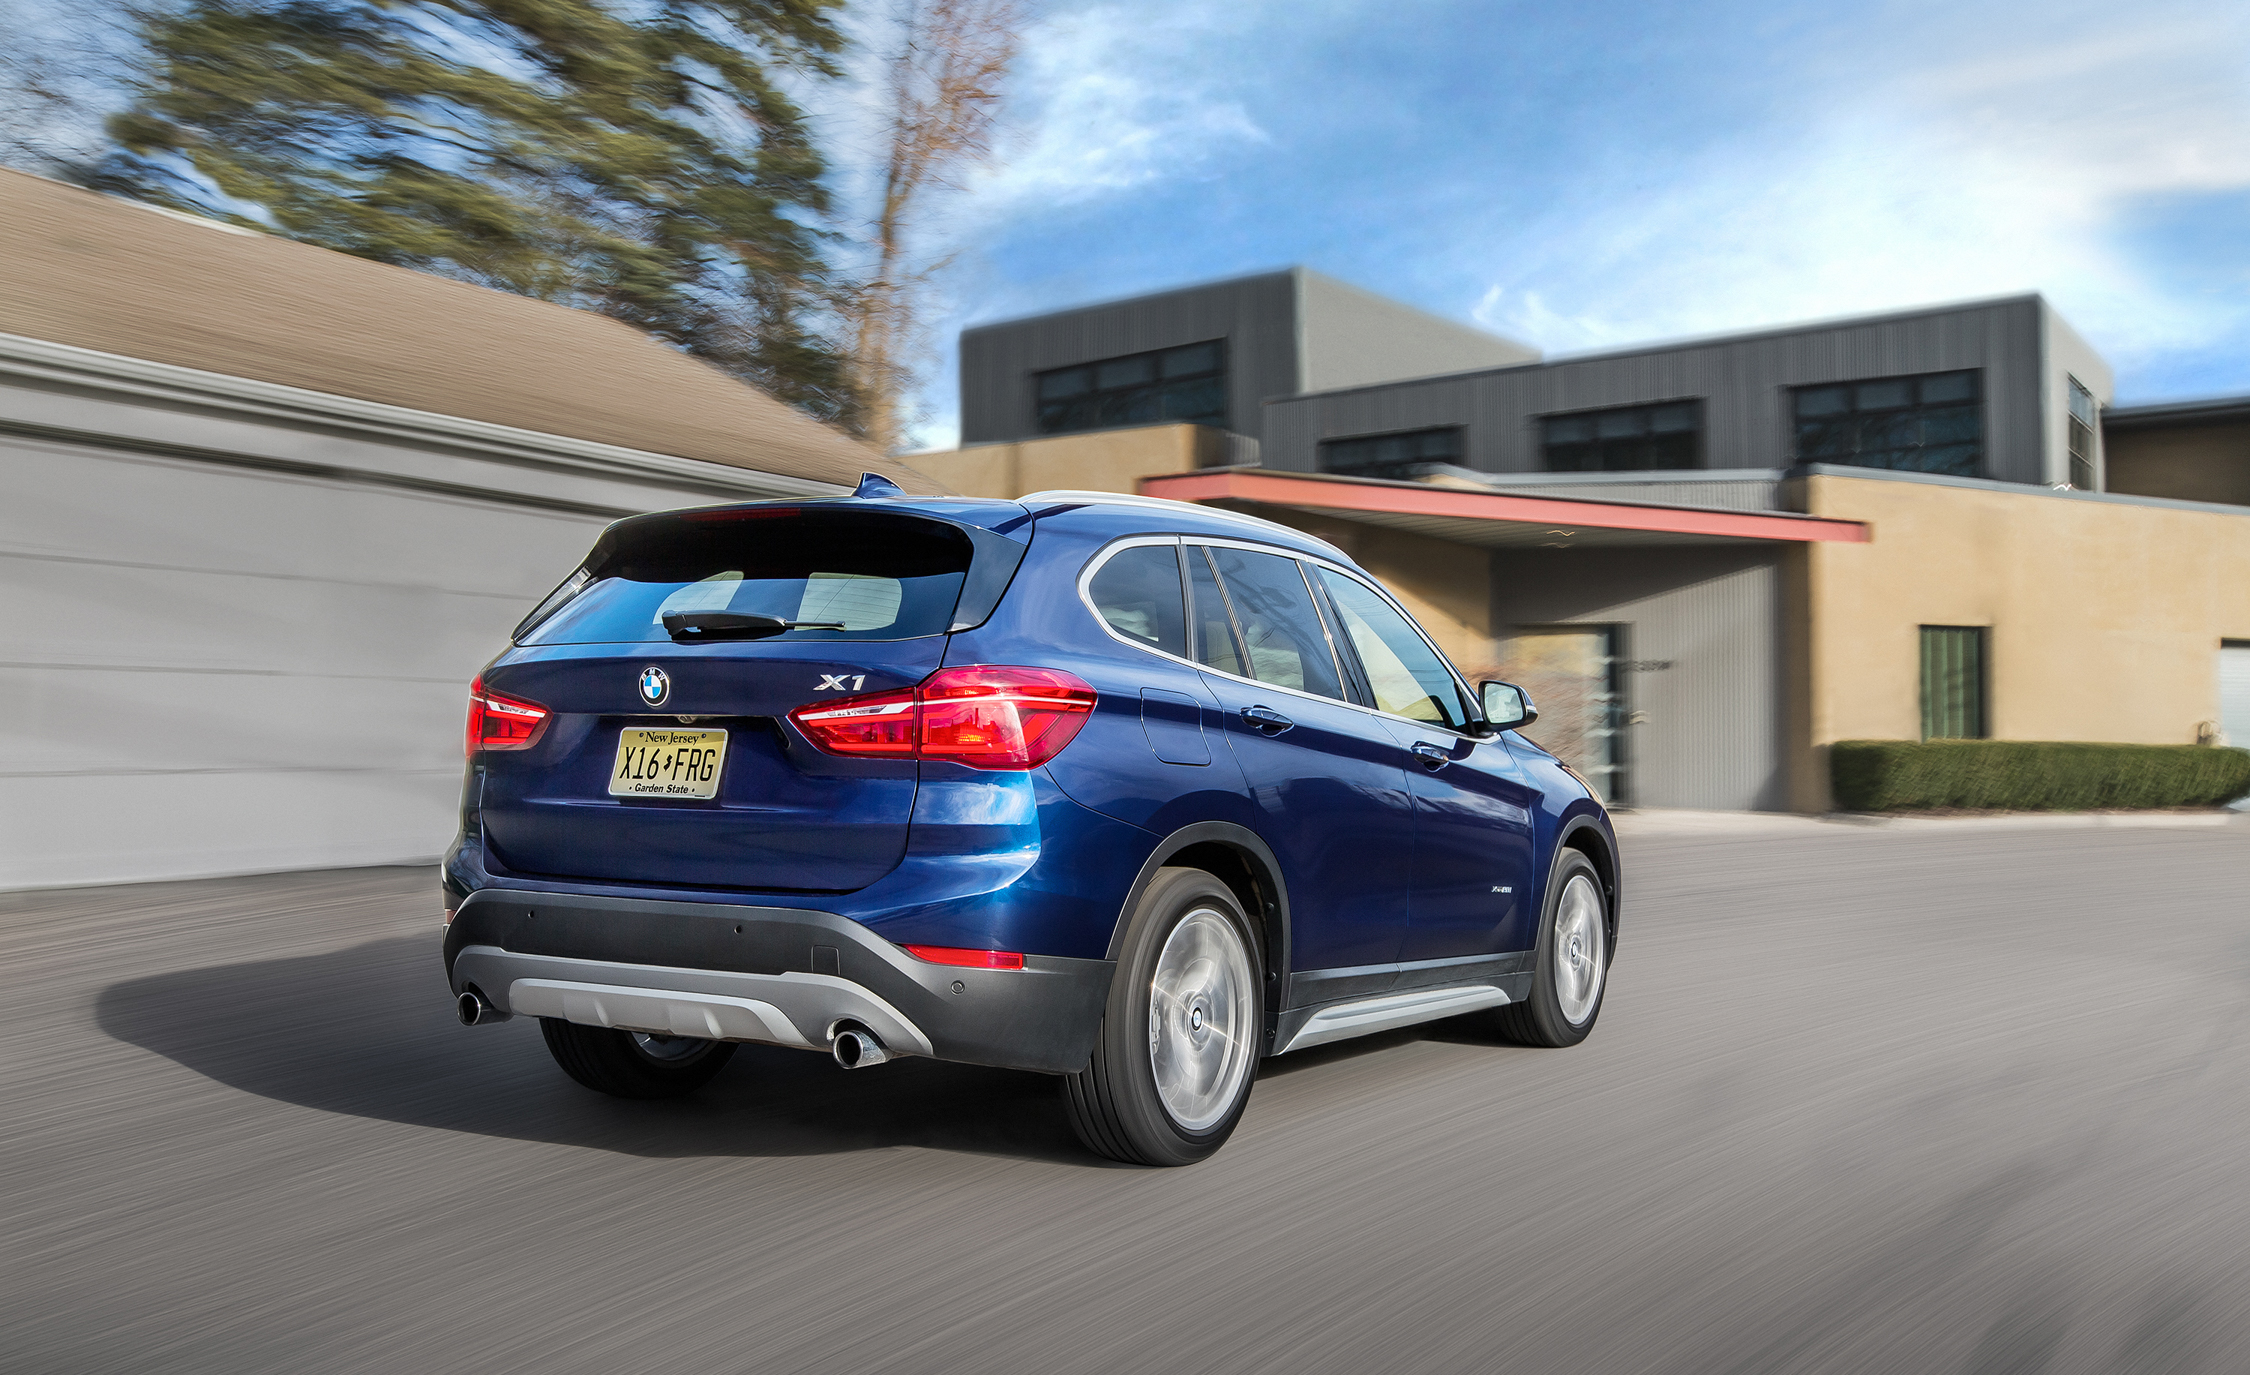 2016 BMW X1 XDrive28i Blue Metallic Test Drive Rear And Side View (Photo 33 of 36)